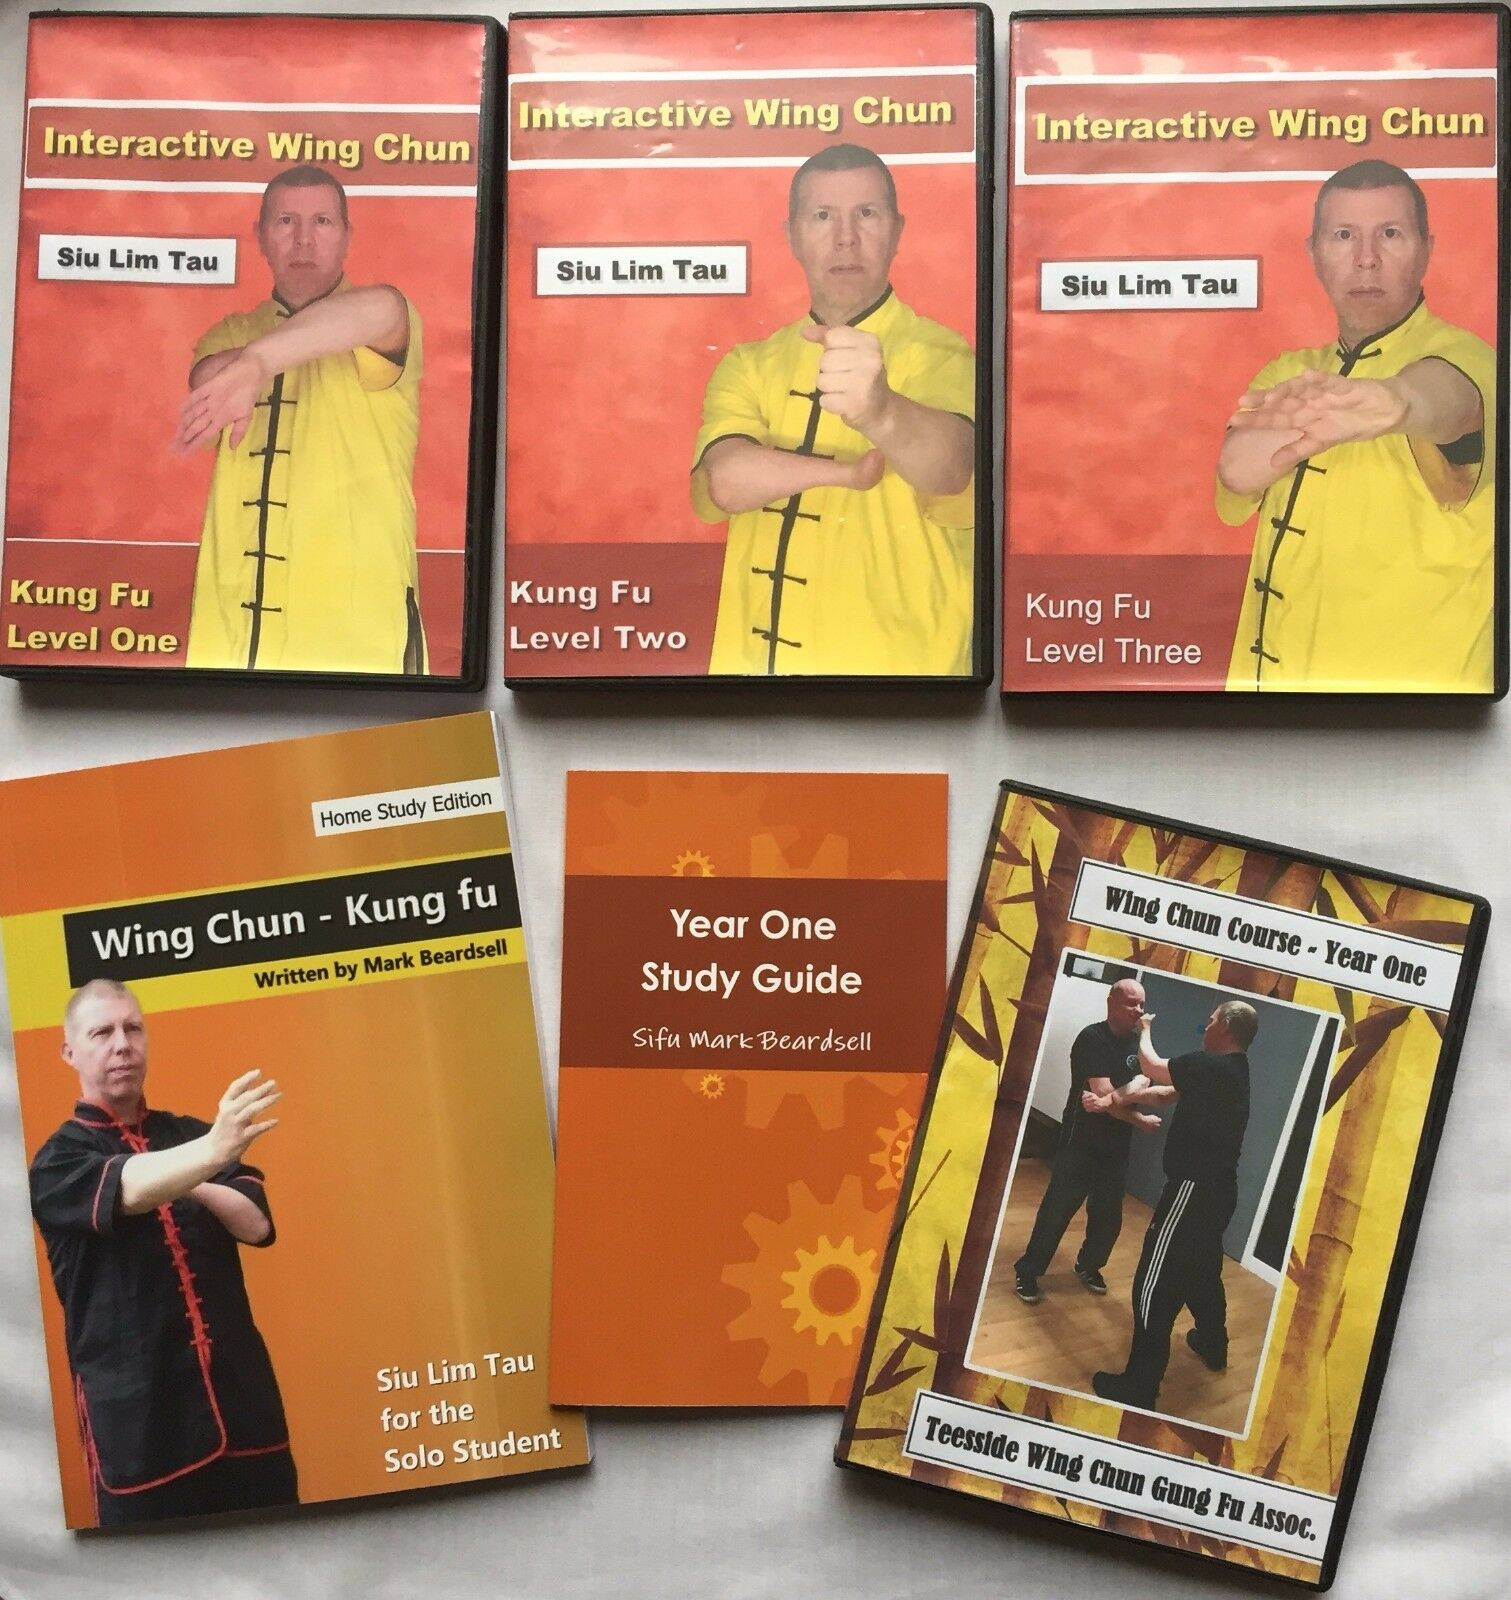 Full HD -1080 - Your ULTIMATE Wing Chun Kung Fu - Home Study Course - Year 1